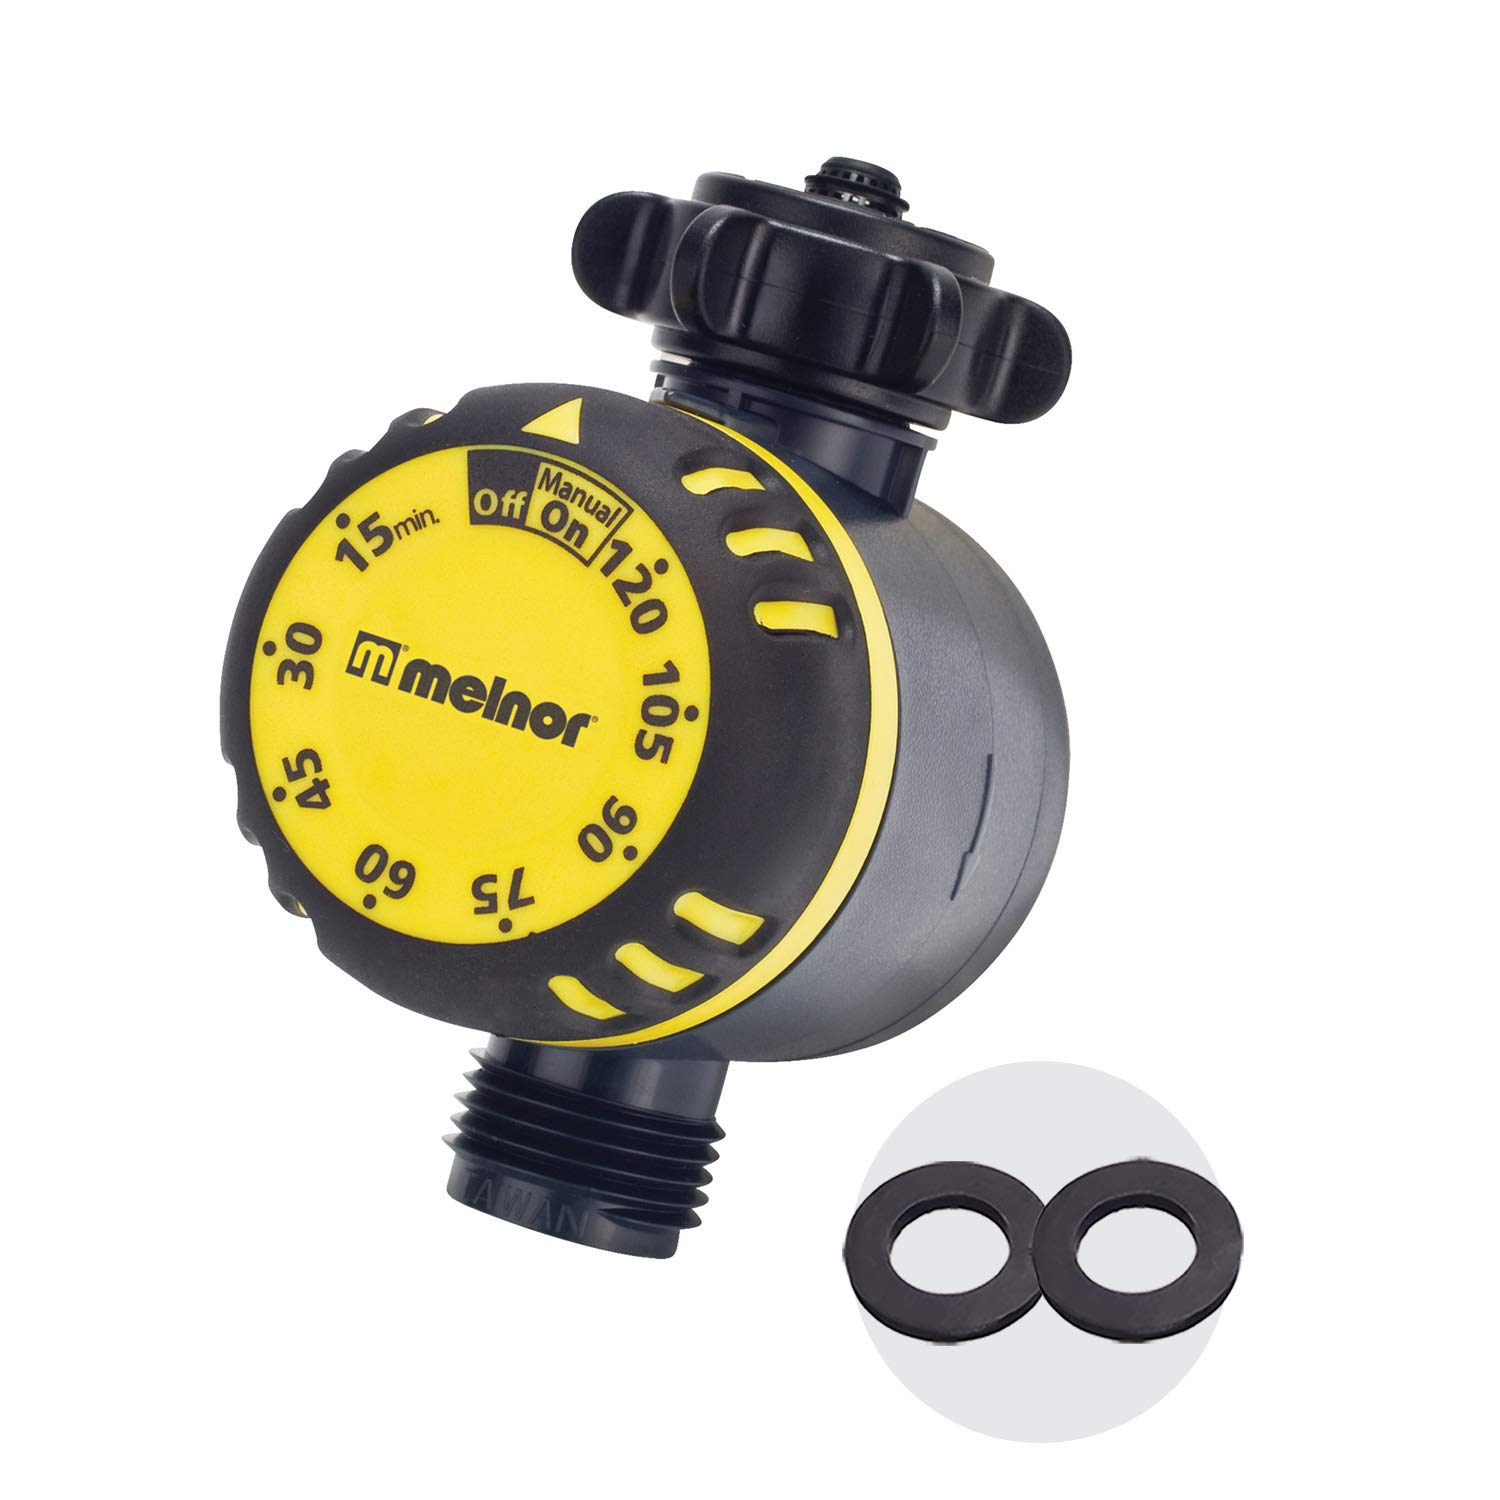 Melnor 65030-AMZ Mechanical Timer with 2 Plastic Filter Washers Set, Black, Yellow